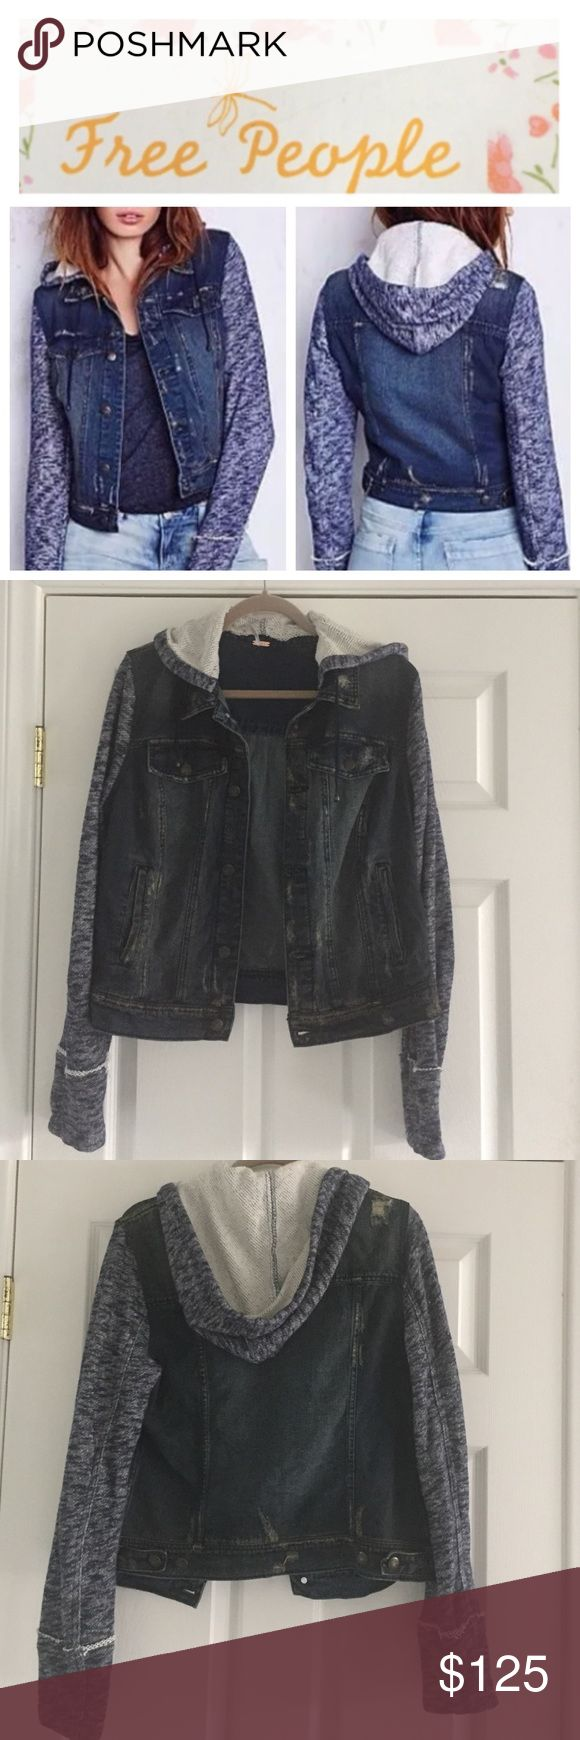 Free People hoodie jean jacket Free People jean jacket hoodie, indigo rinse, size large.  Distressed with the look of wear.  Super cute for fall!  NWT model pics from Free People website to show fit & styling. Free People Jackets & Coats Jean Jackets